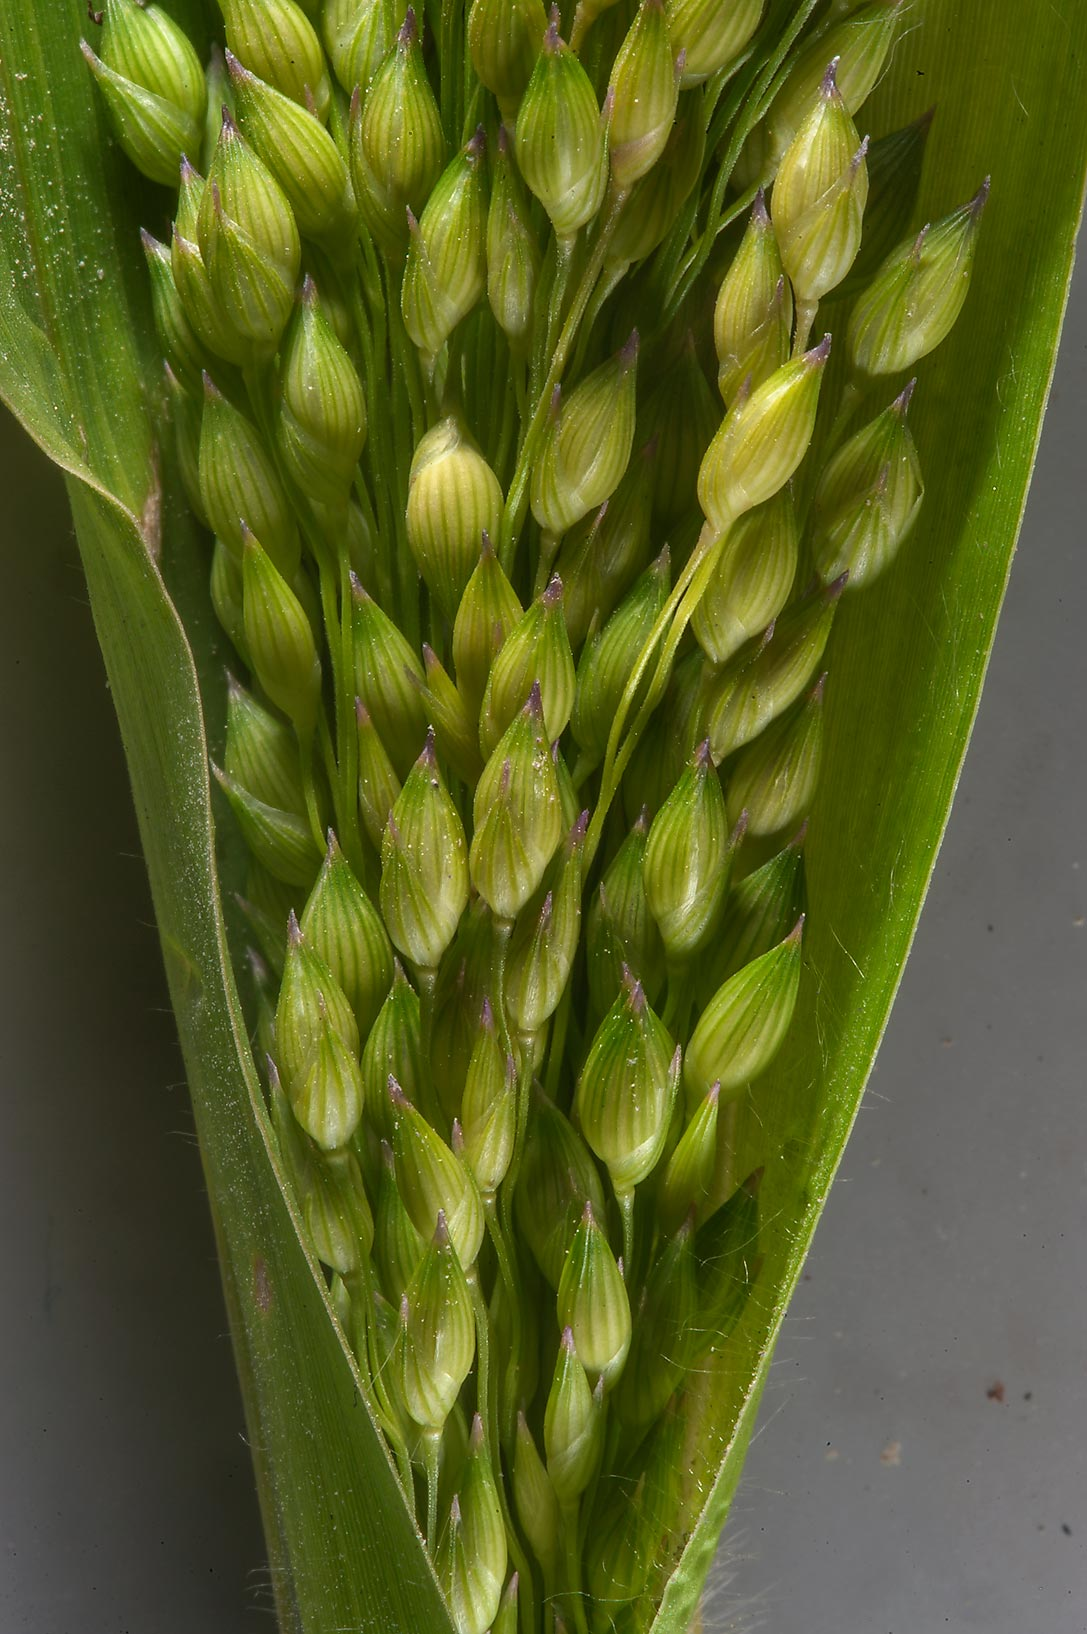 Close up of sudangrass (Sorghum sudanense...in Umm Lekhba area. Doha, Qatar